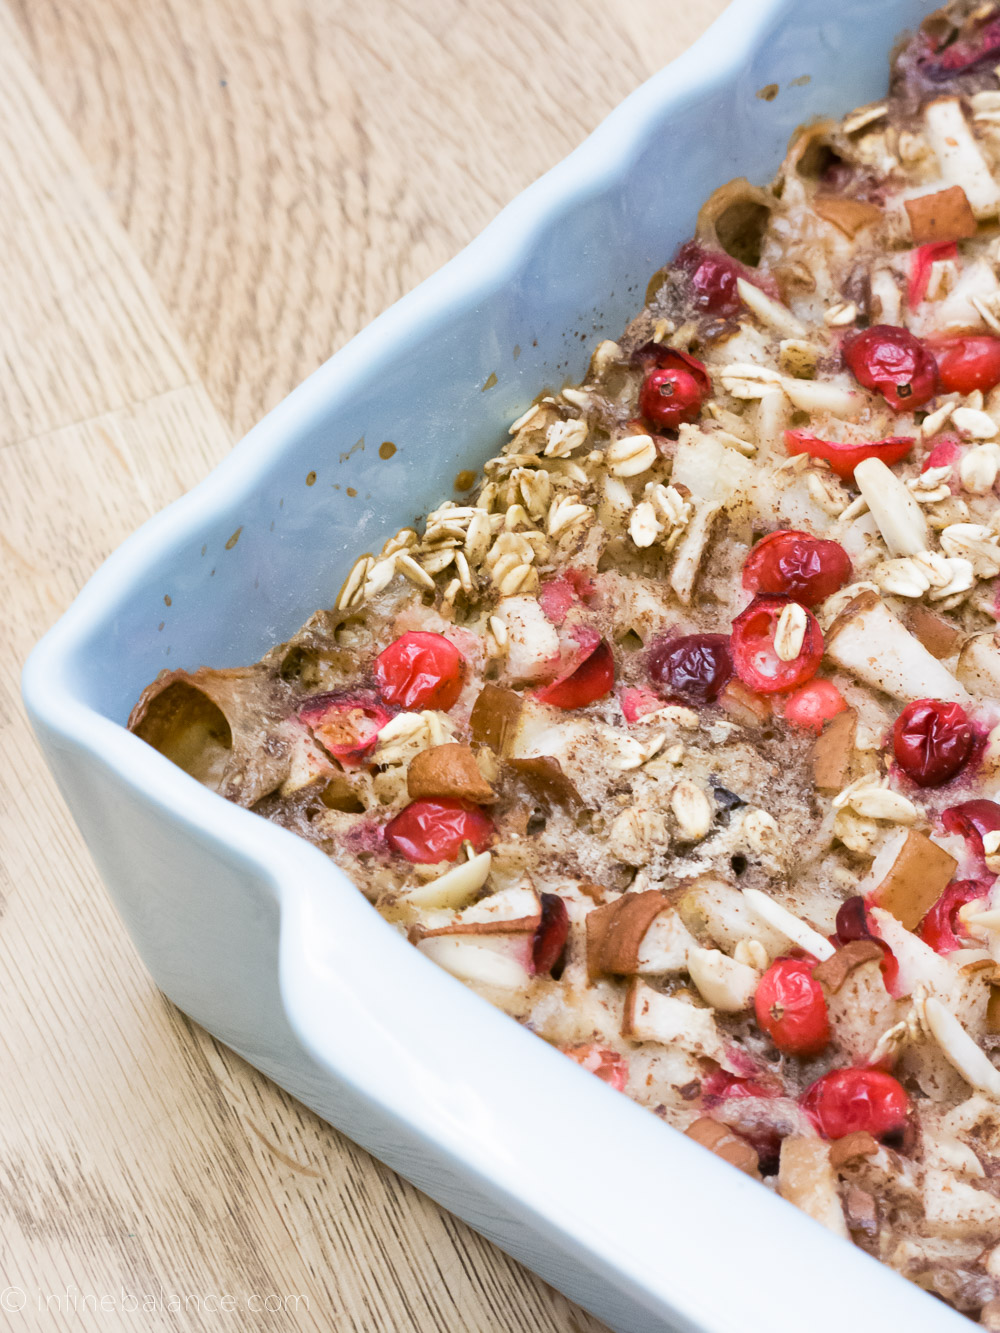 Cranberry and Pear Baked Oatmeal | the infinebalance food blog